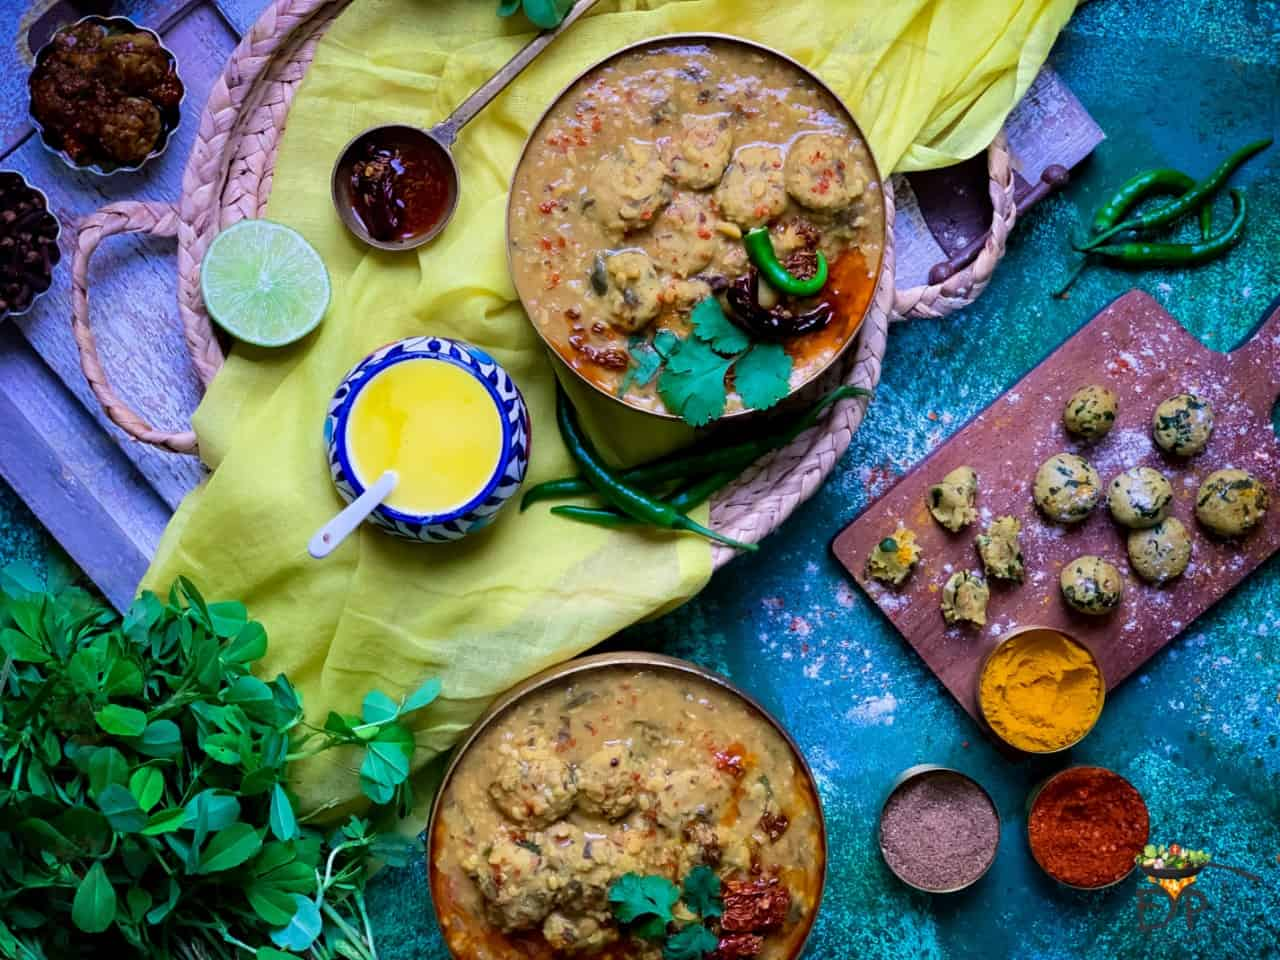 Rajasthani Dal dhokli served with ghee, lemon and chillies